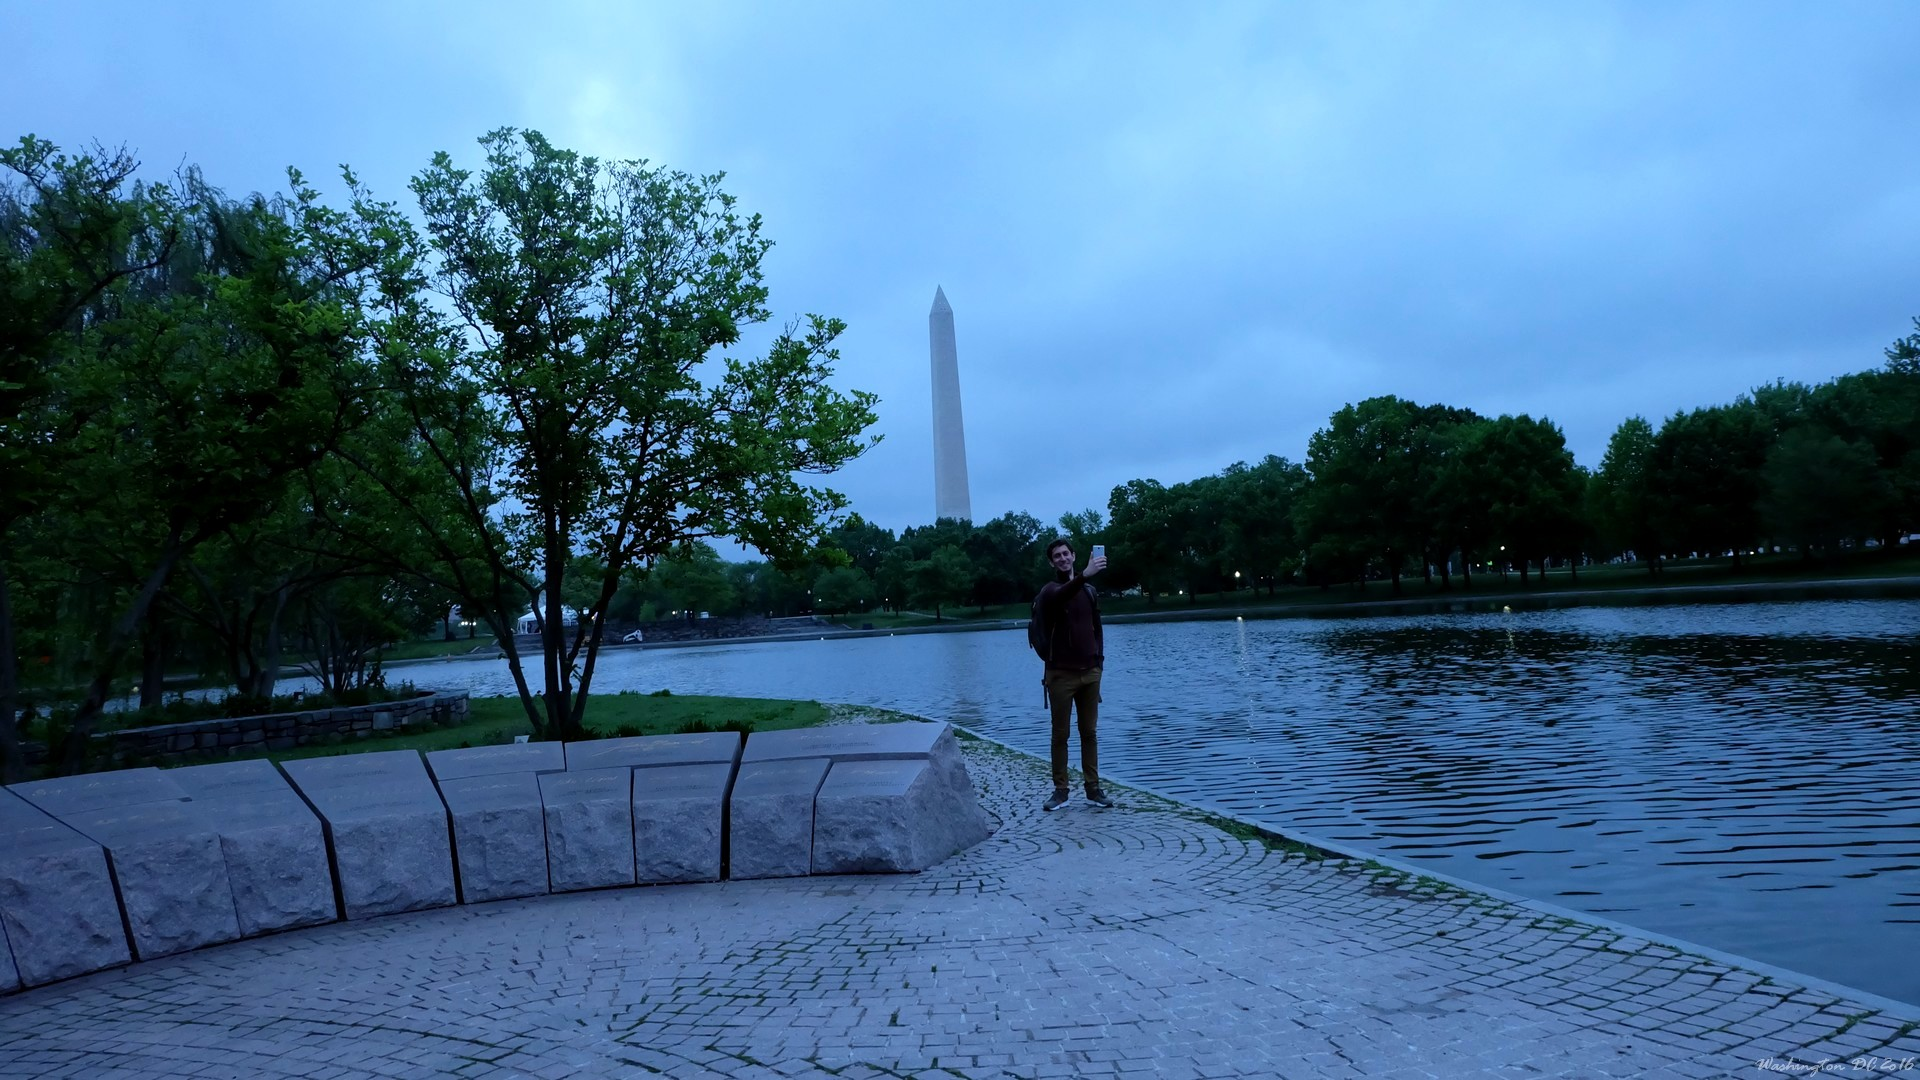 Washington D.C., USA